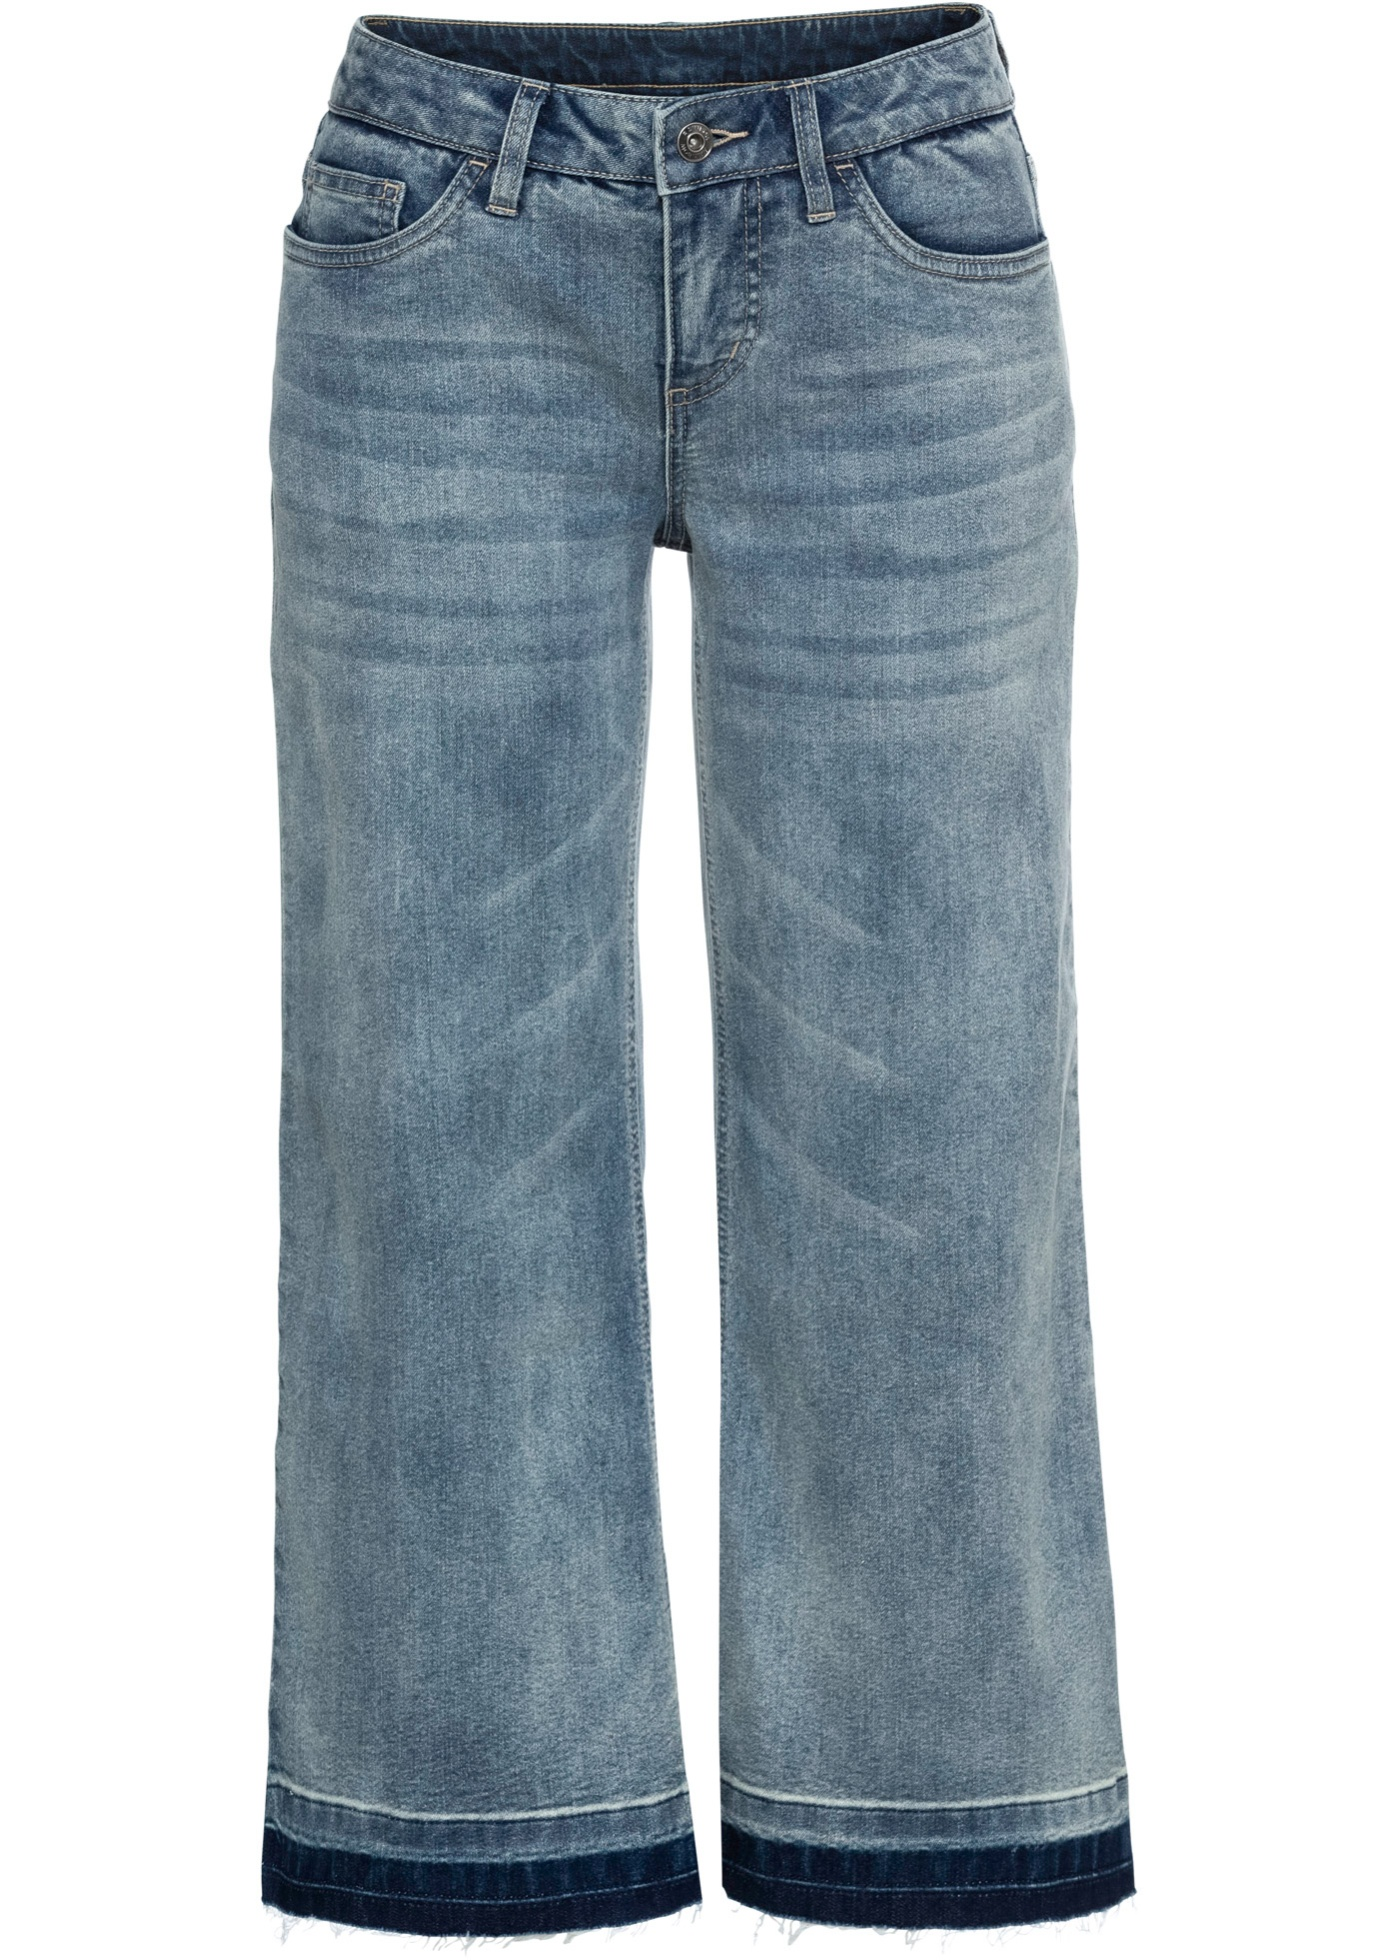 Culotter jeans